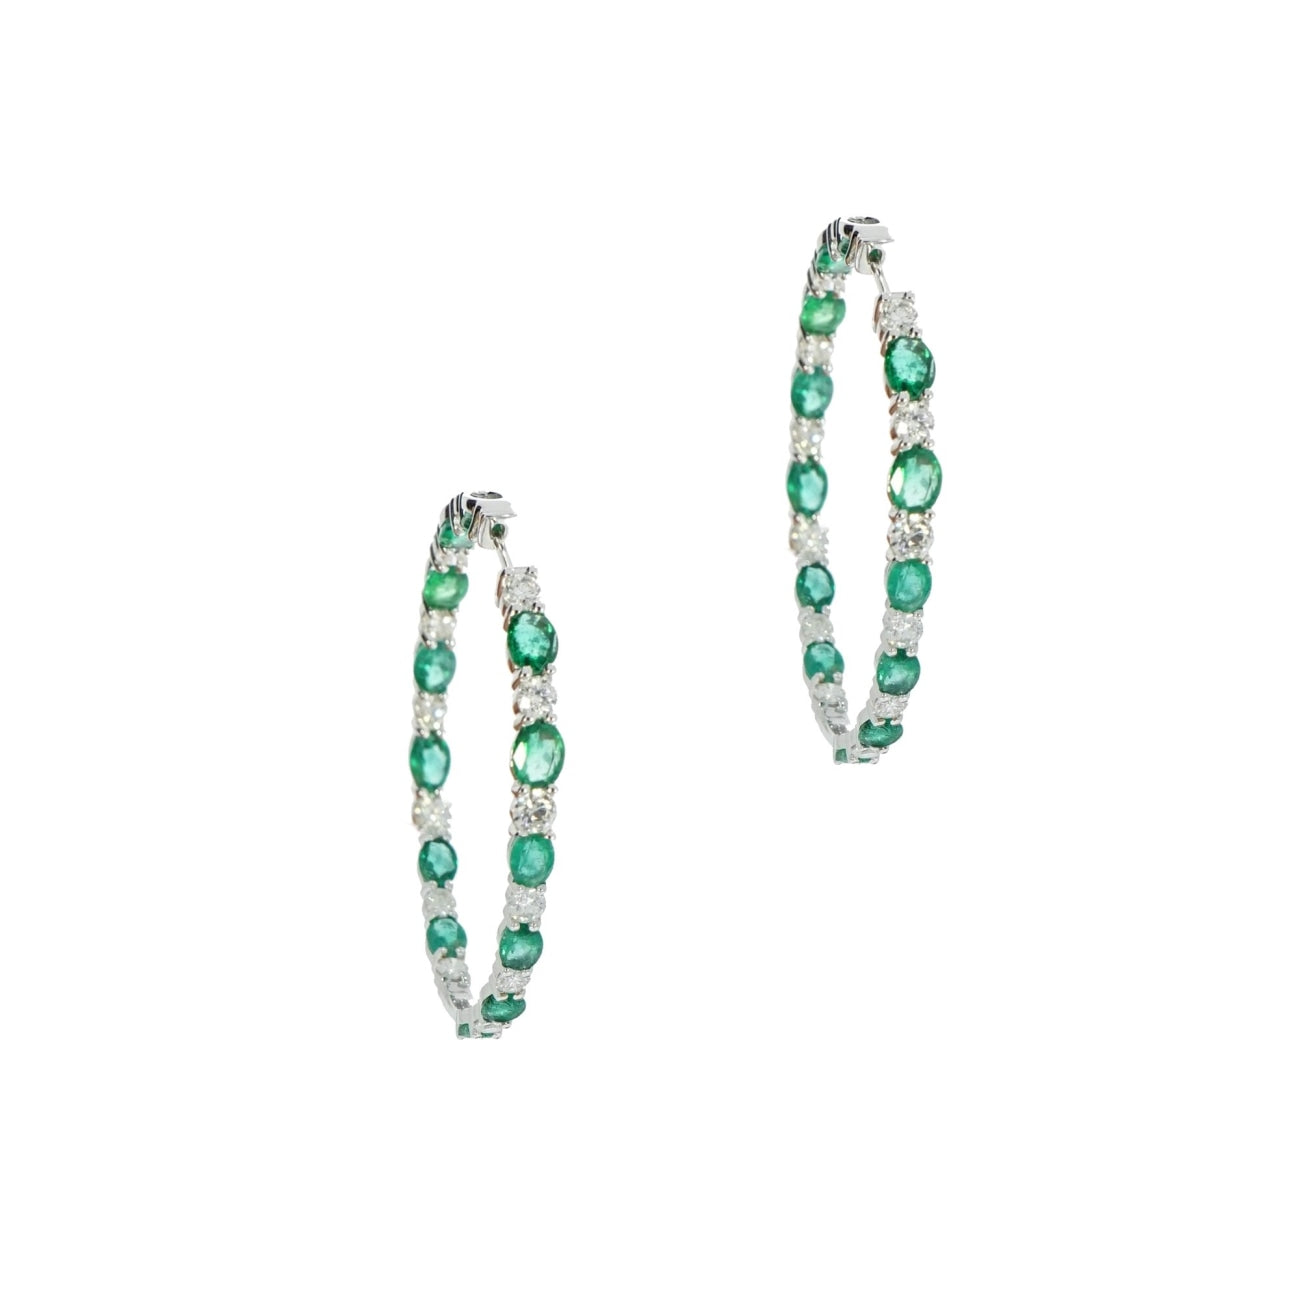 Estate Jewelry Estate Jewelry - Emerald and Diamond White Gold In/Out Hoop Earrings | Manfredi Jewels